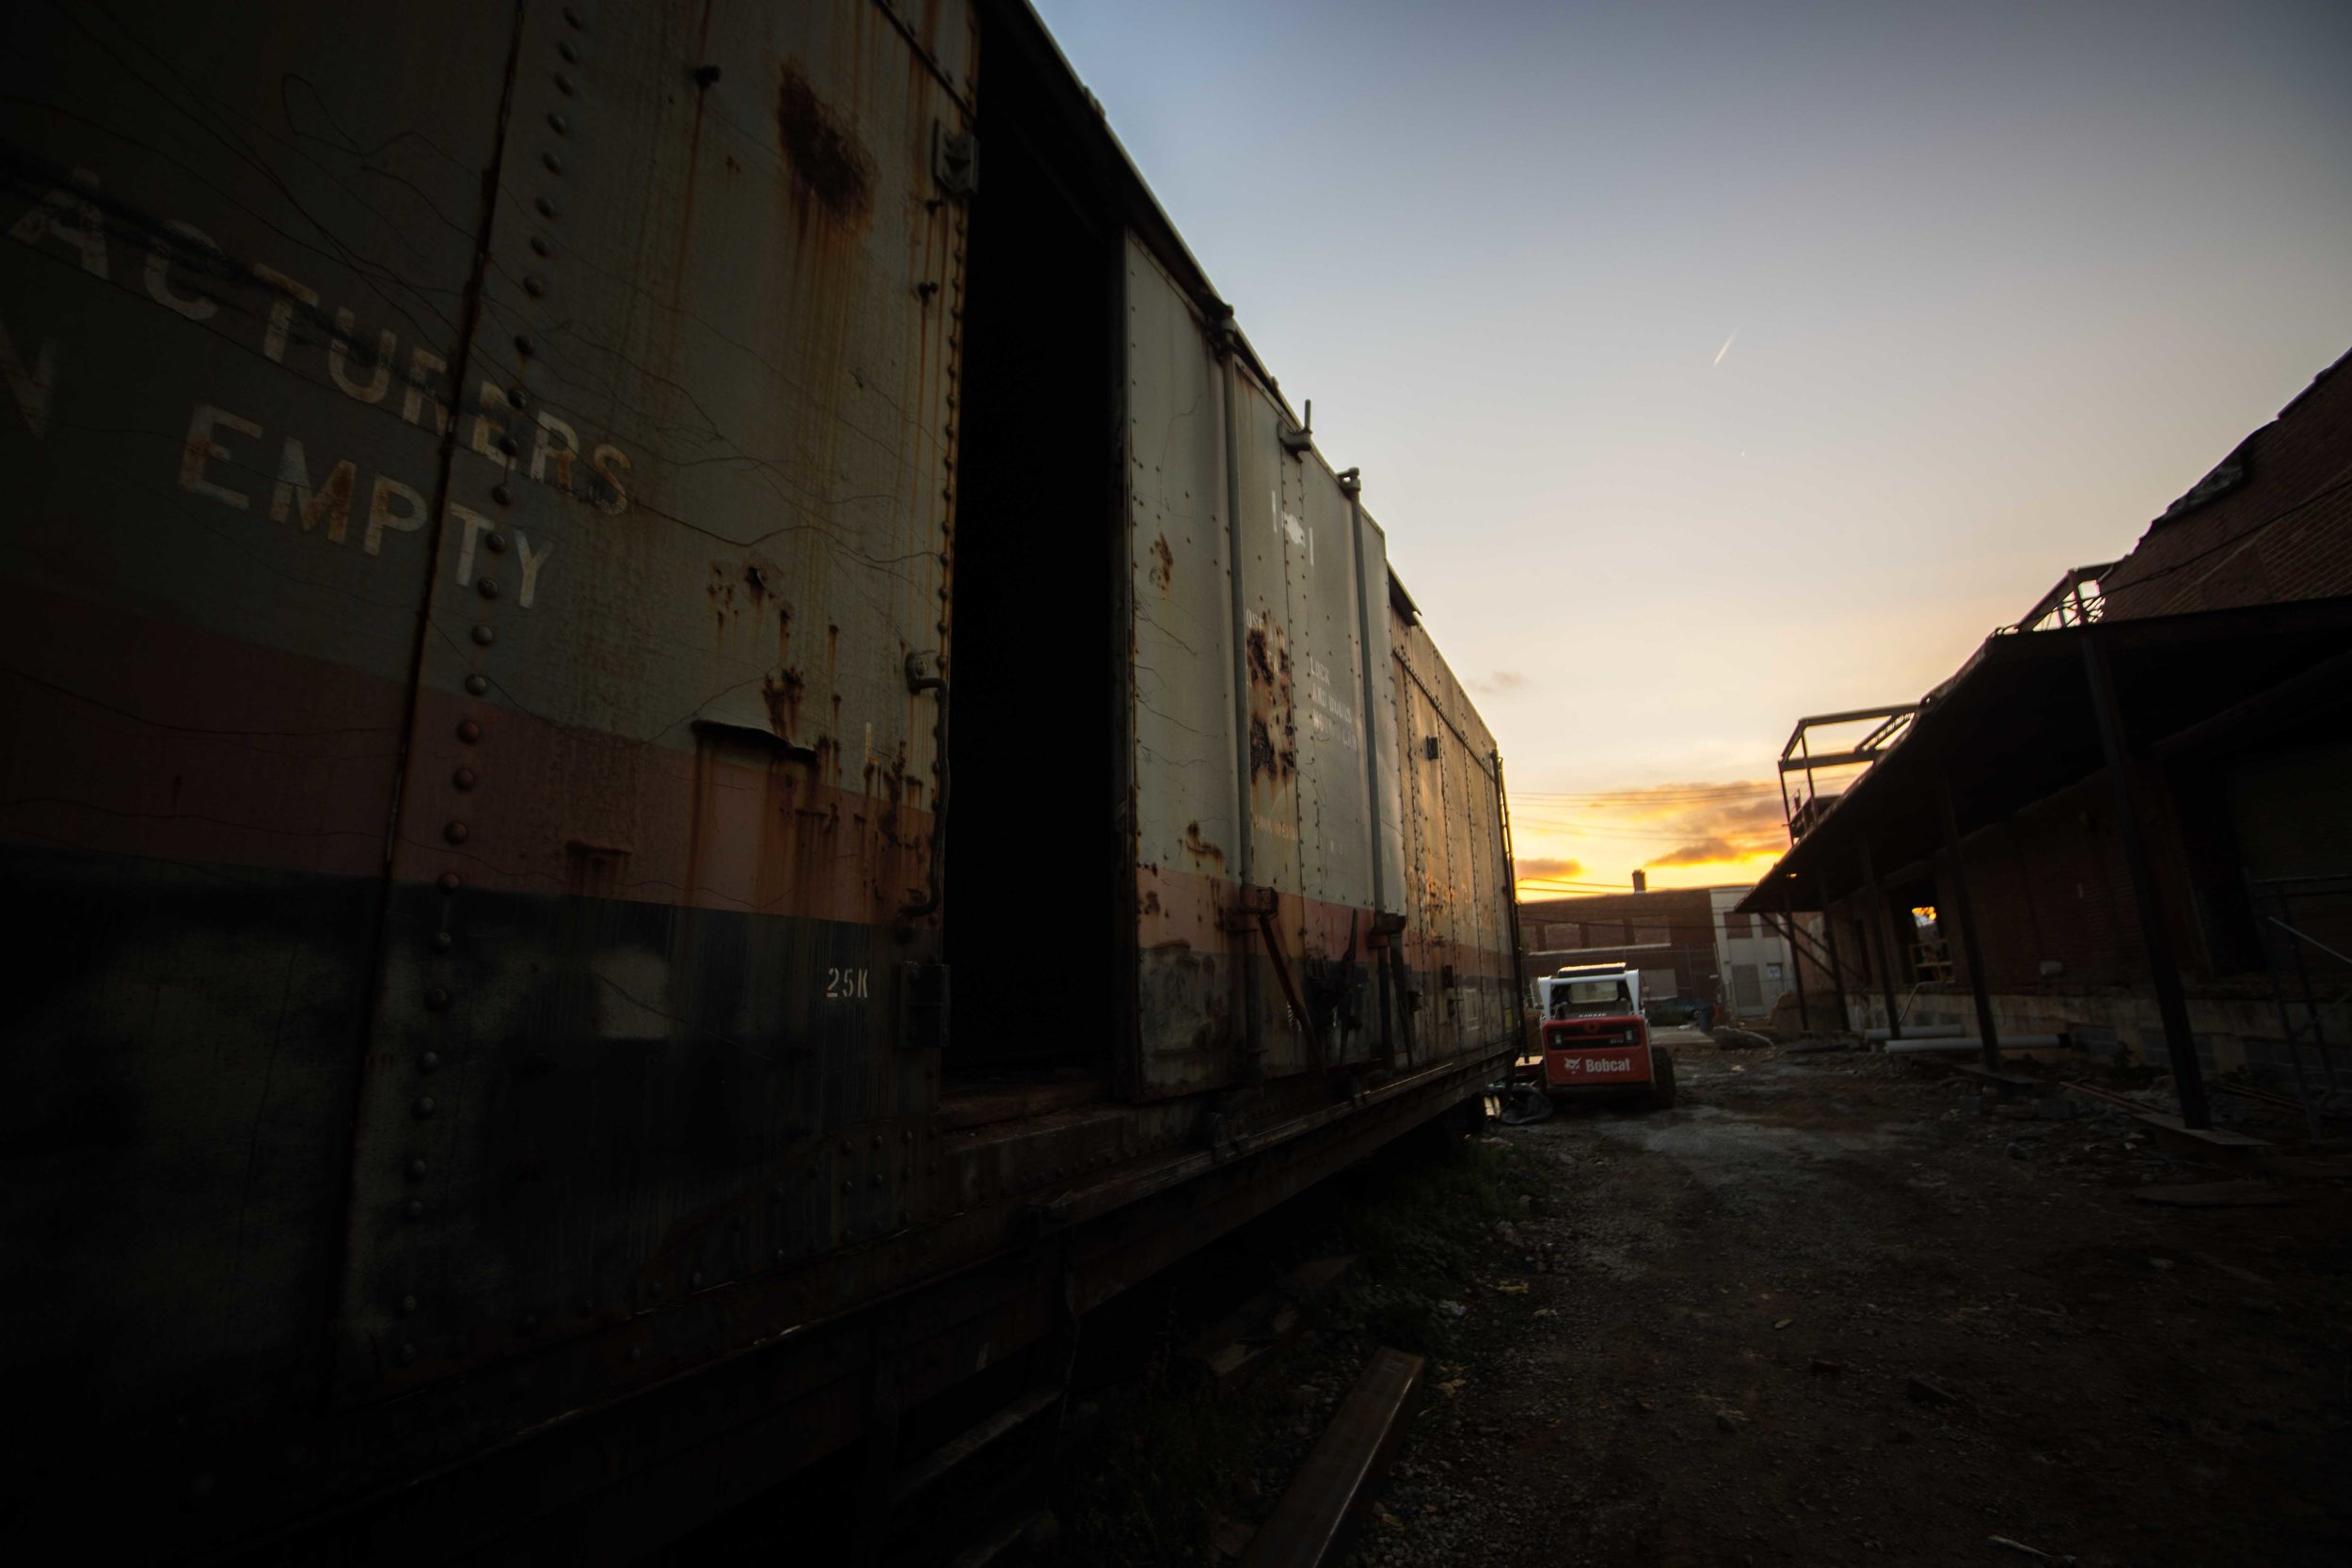 Freight Yard, Ivy City, Washington DC